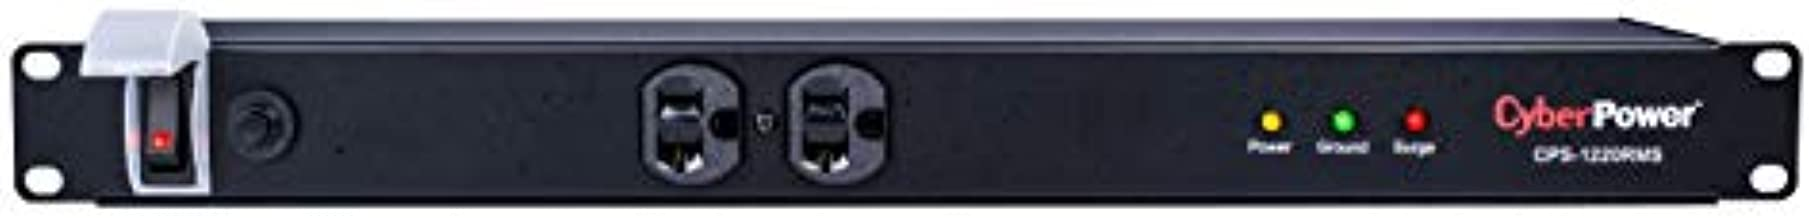 CyberPower CPS1220RMS Surge Protector, 120V/20A, 12 Outlets, 15ft Power Cord, 1U Rackmount, Black